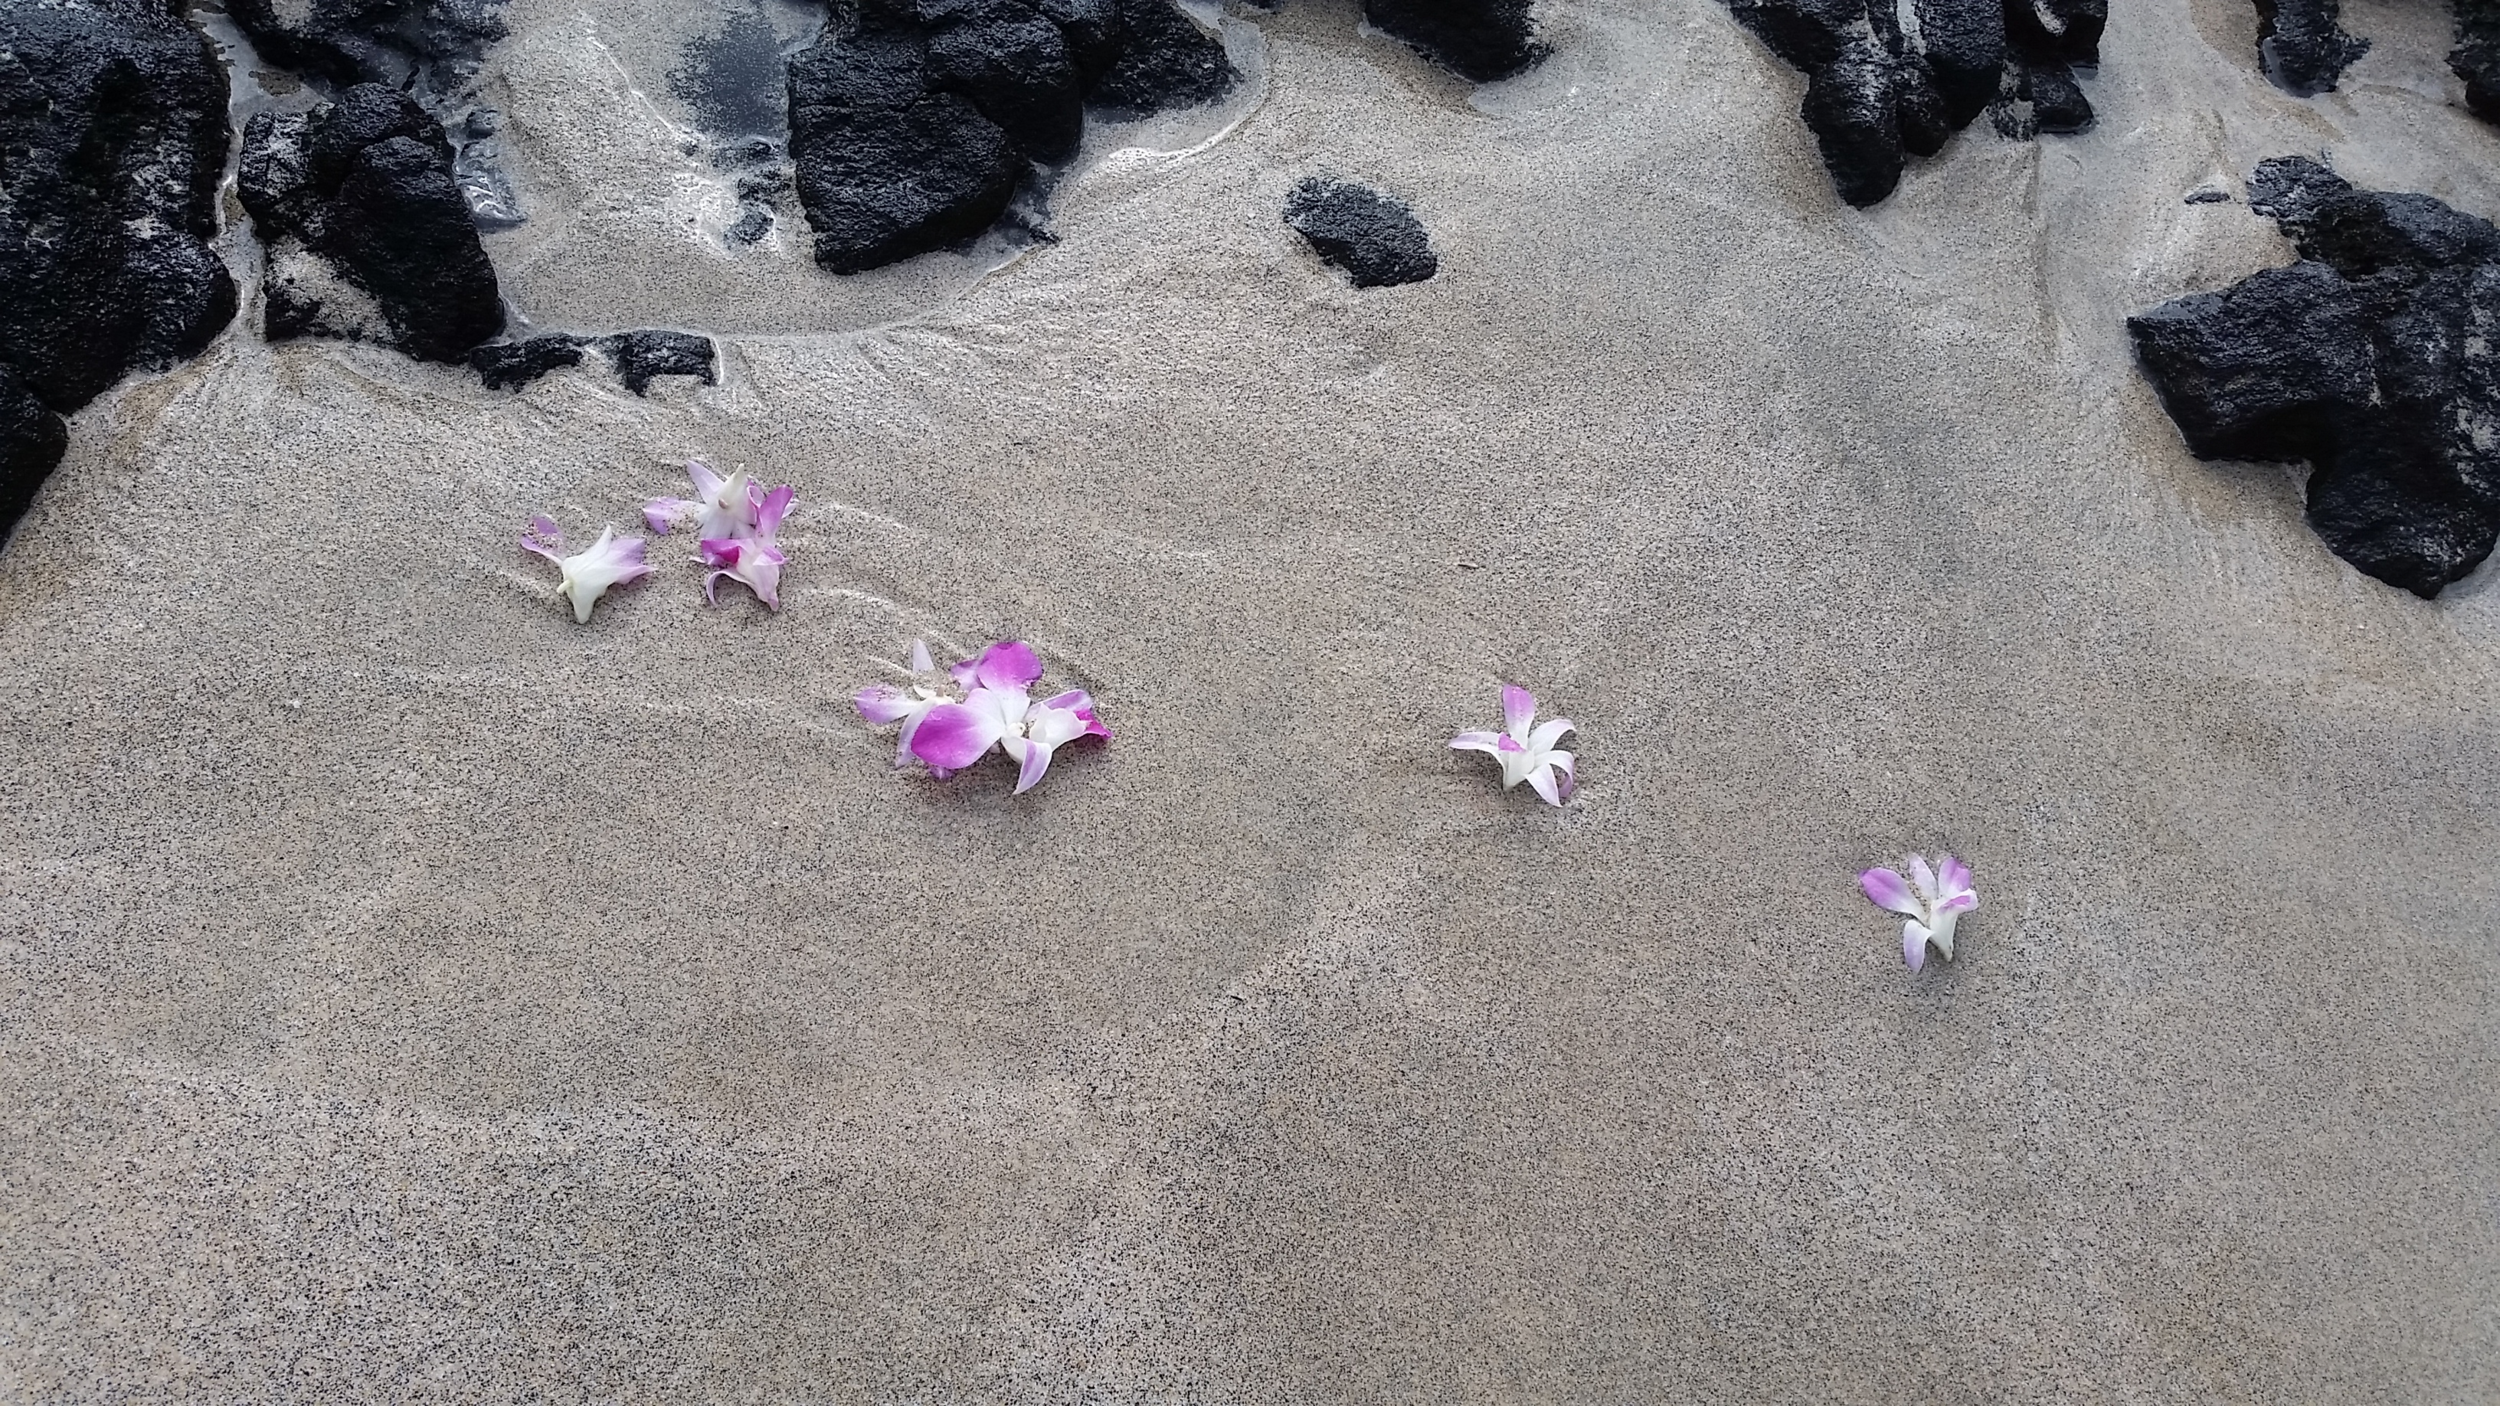 Our flowers from our anniversary leis headed out to sea.